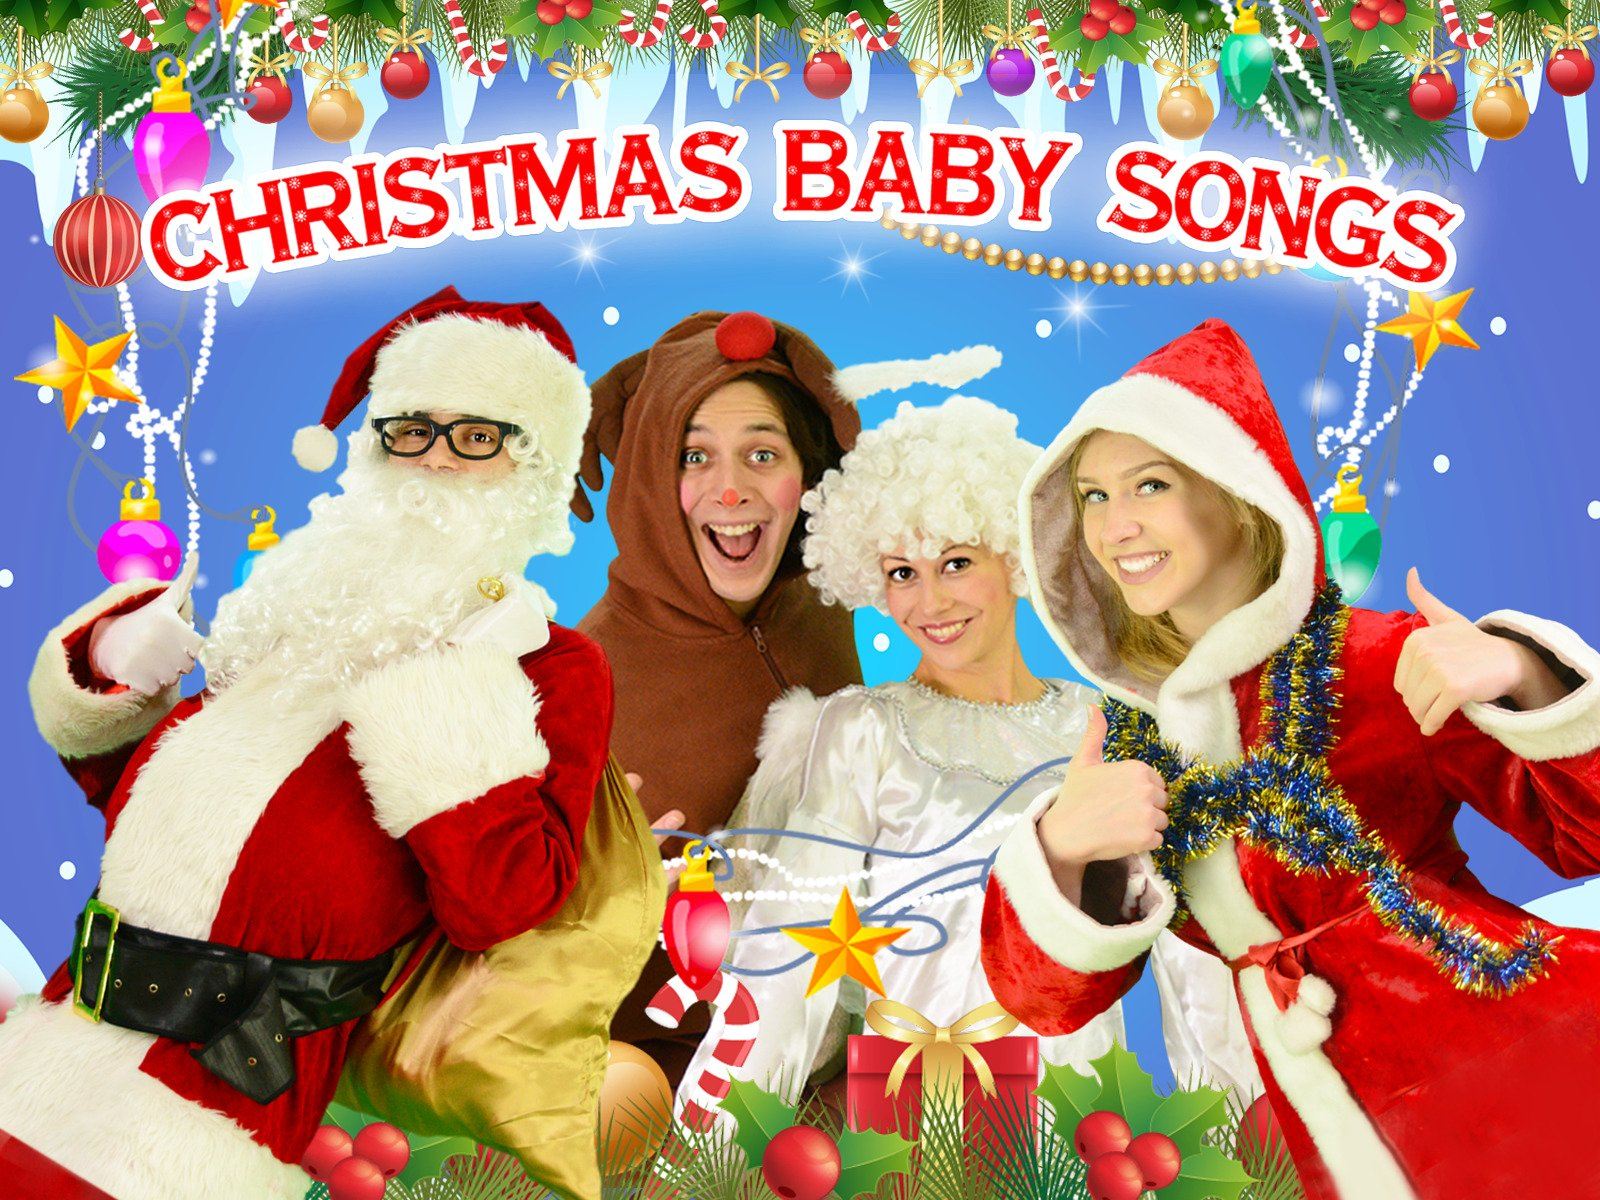 Christmas Baby Songs - Season 1